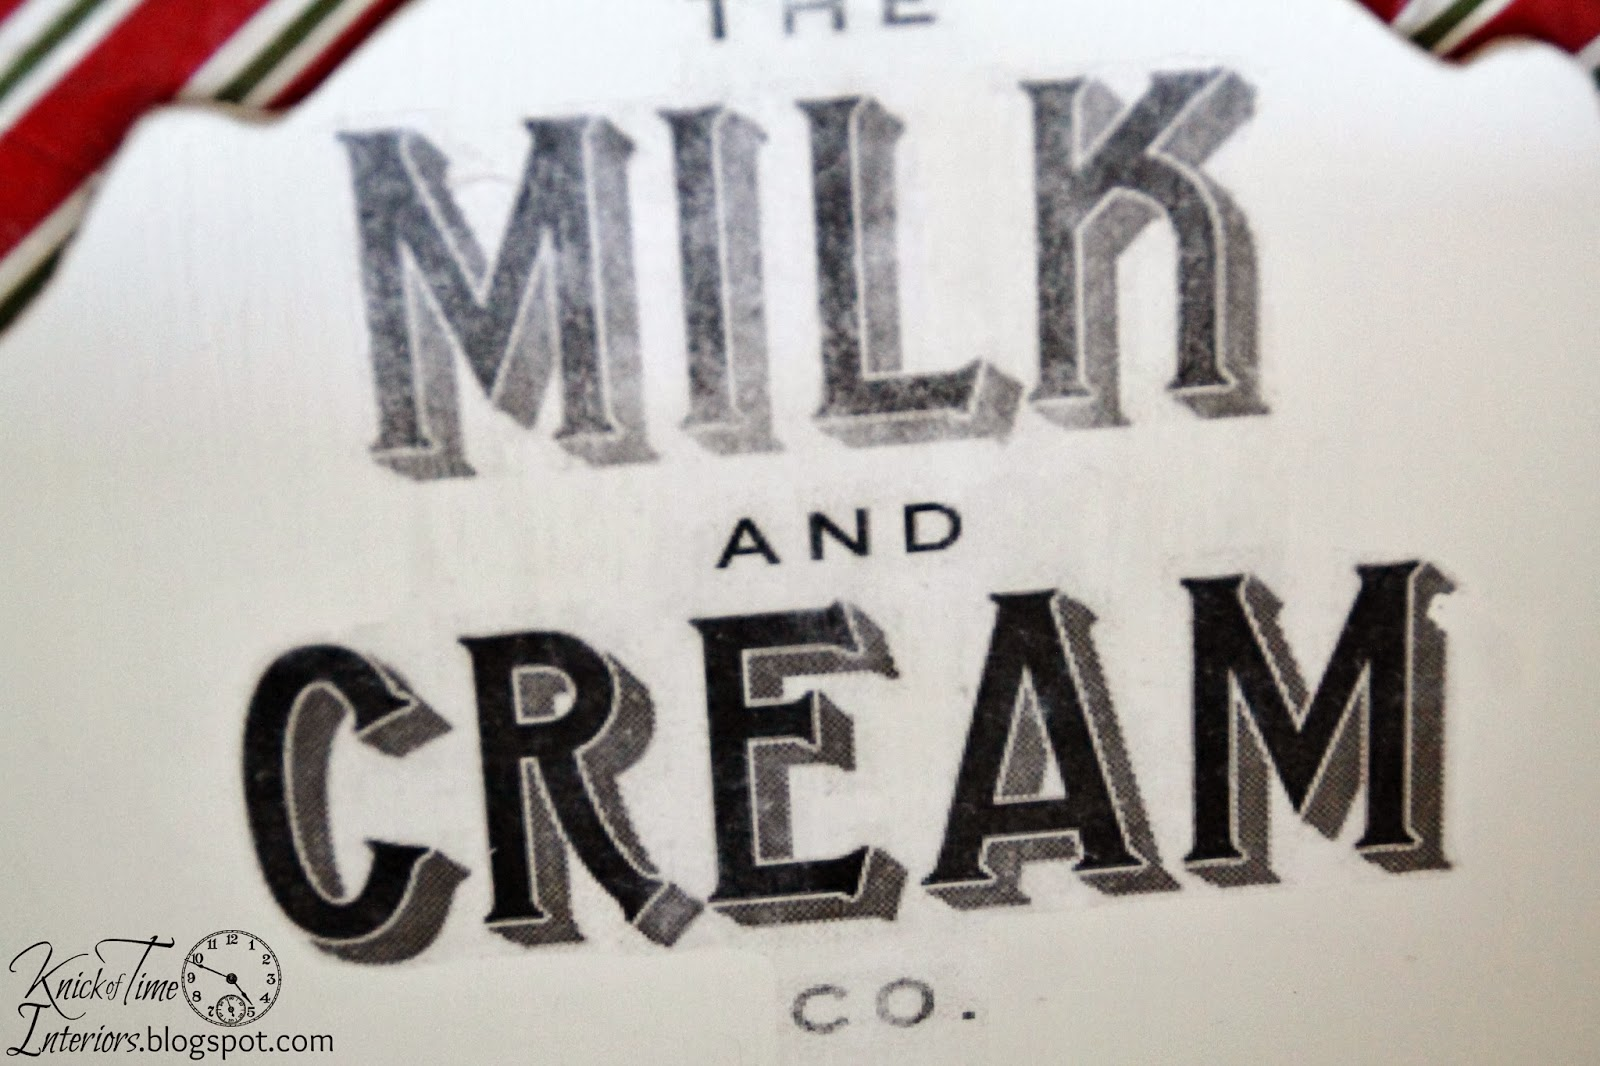 Omni Gel Image Transfer on Wood with Milk and Cream Company image via Knick of Time